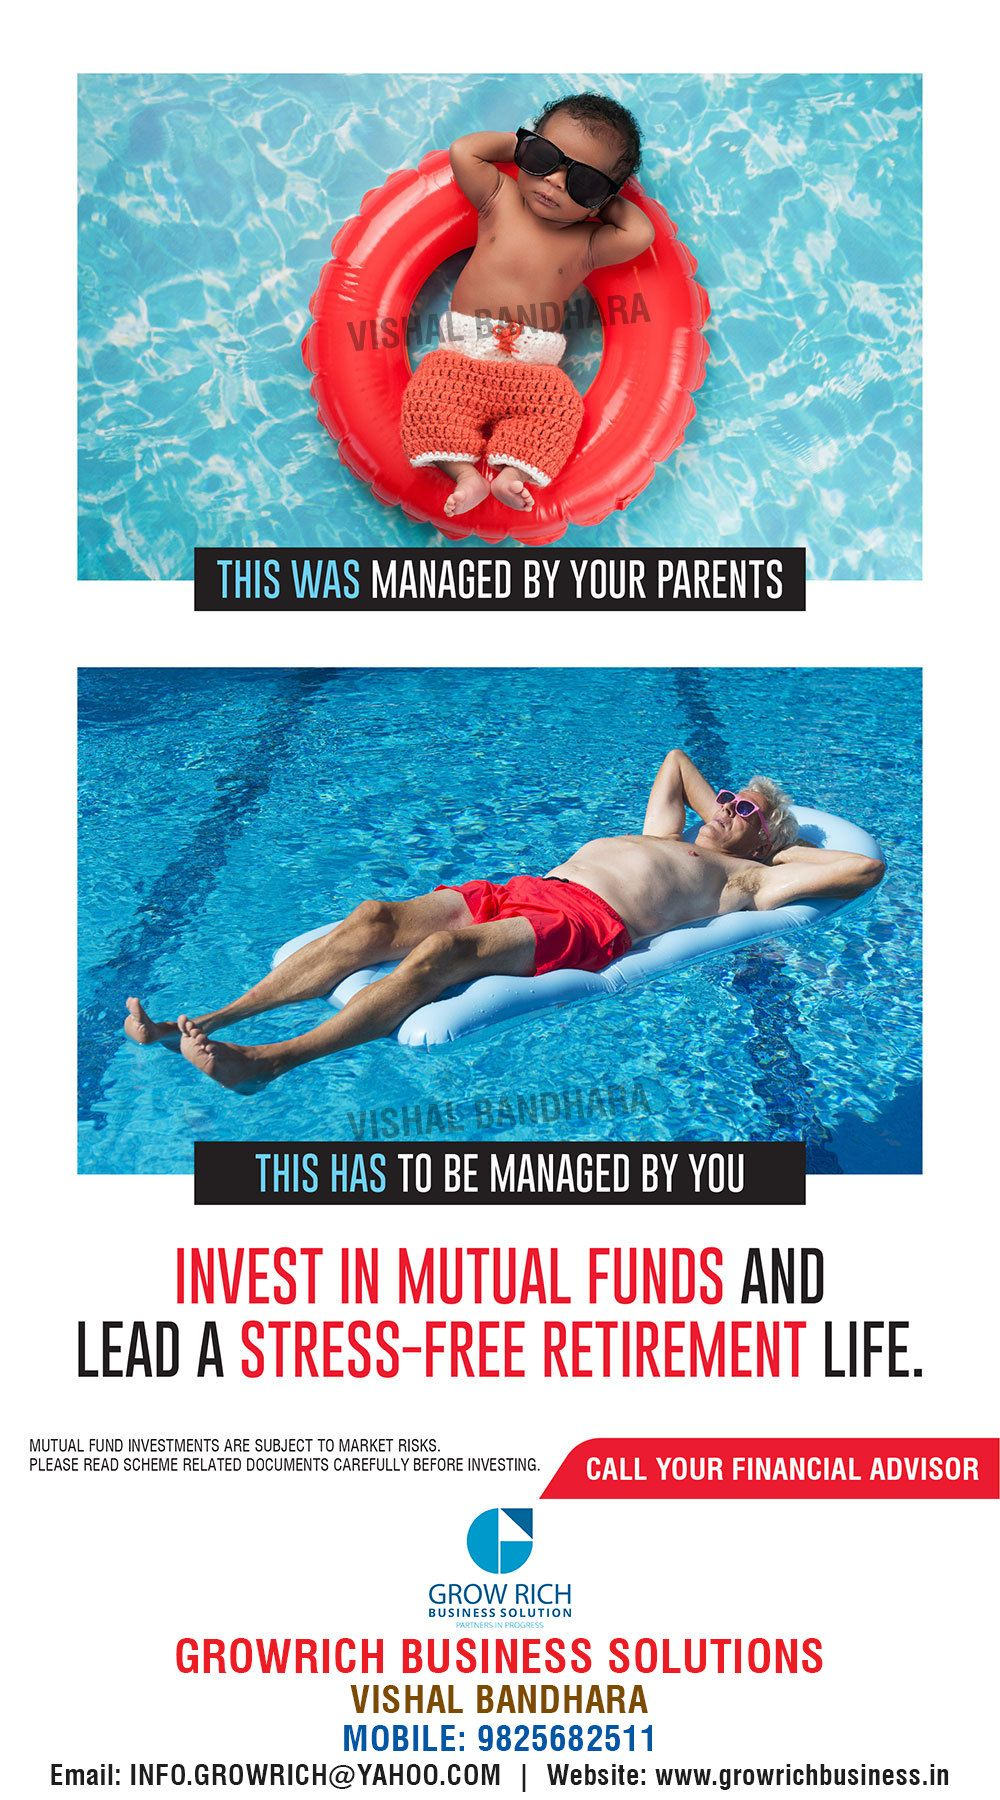 Save now and enjoy later financial advisors grow